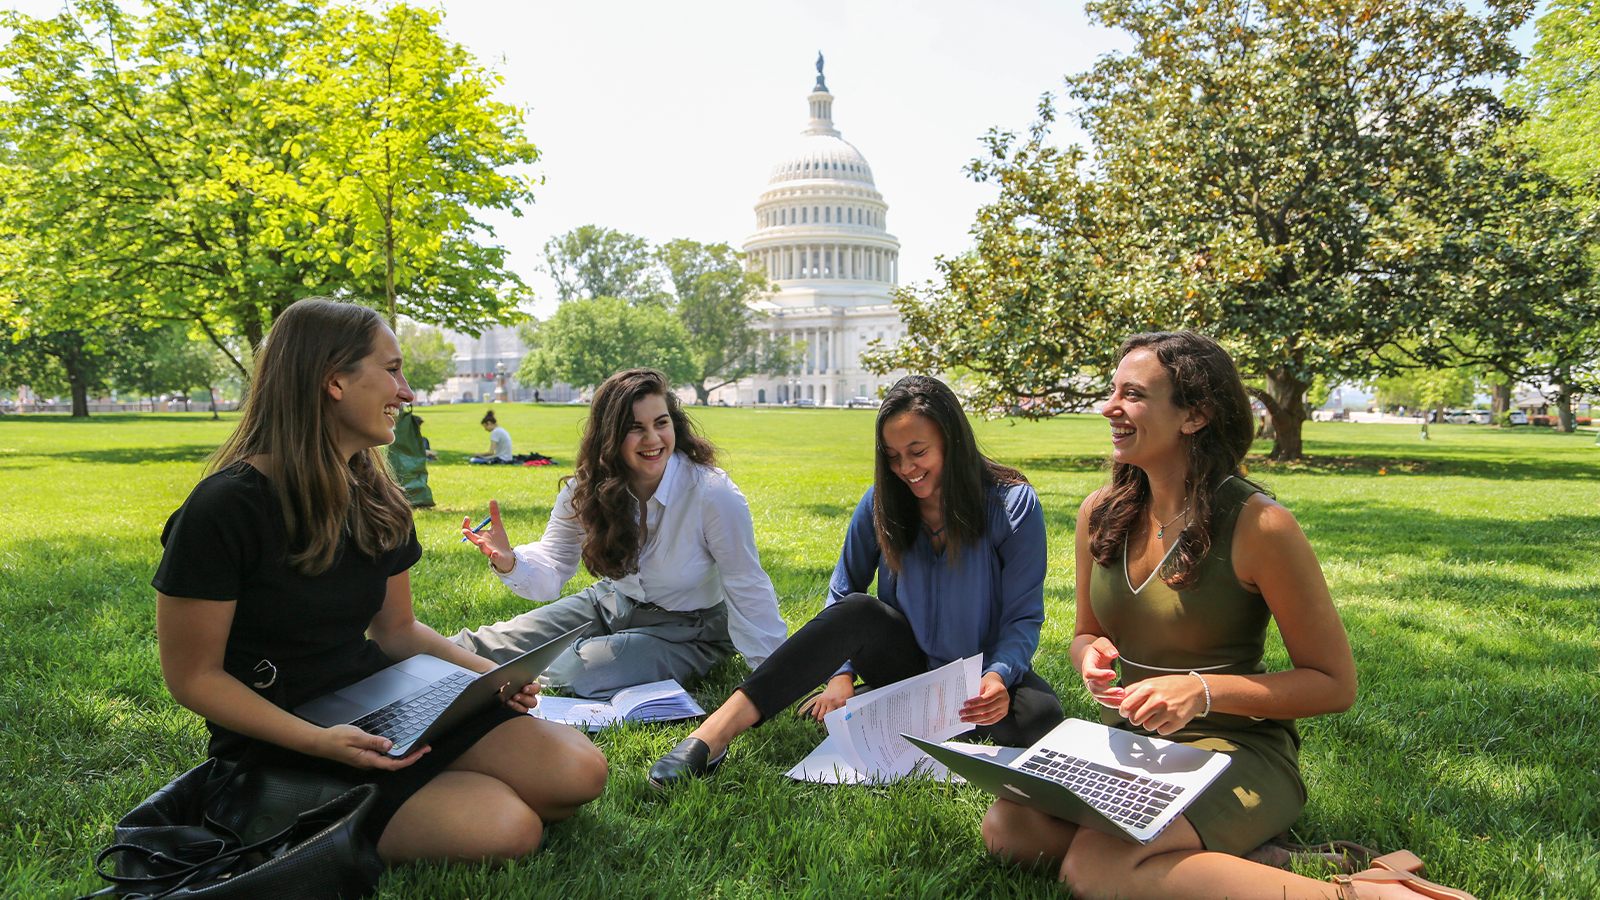 Female Georgetown students sit on the grass with the U.S. Capitol Building in the background